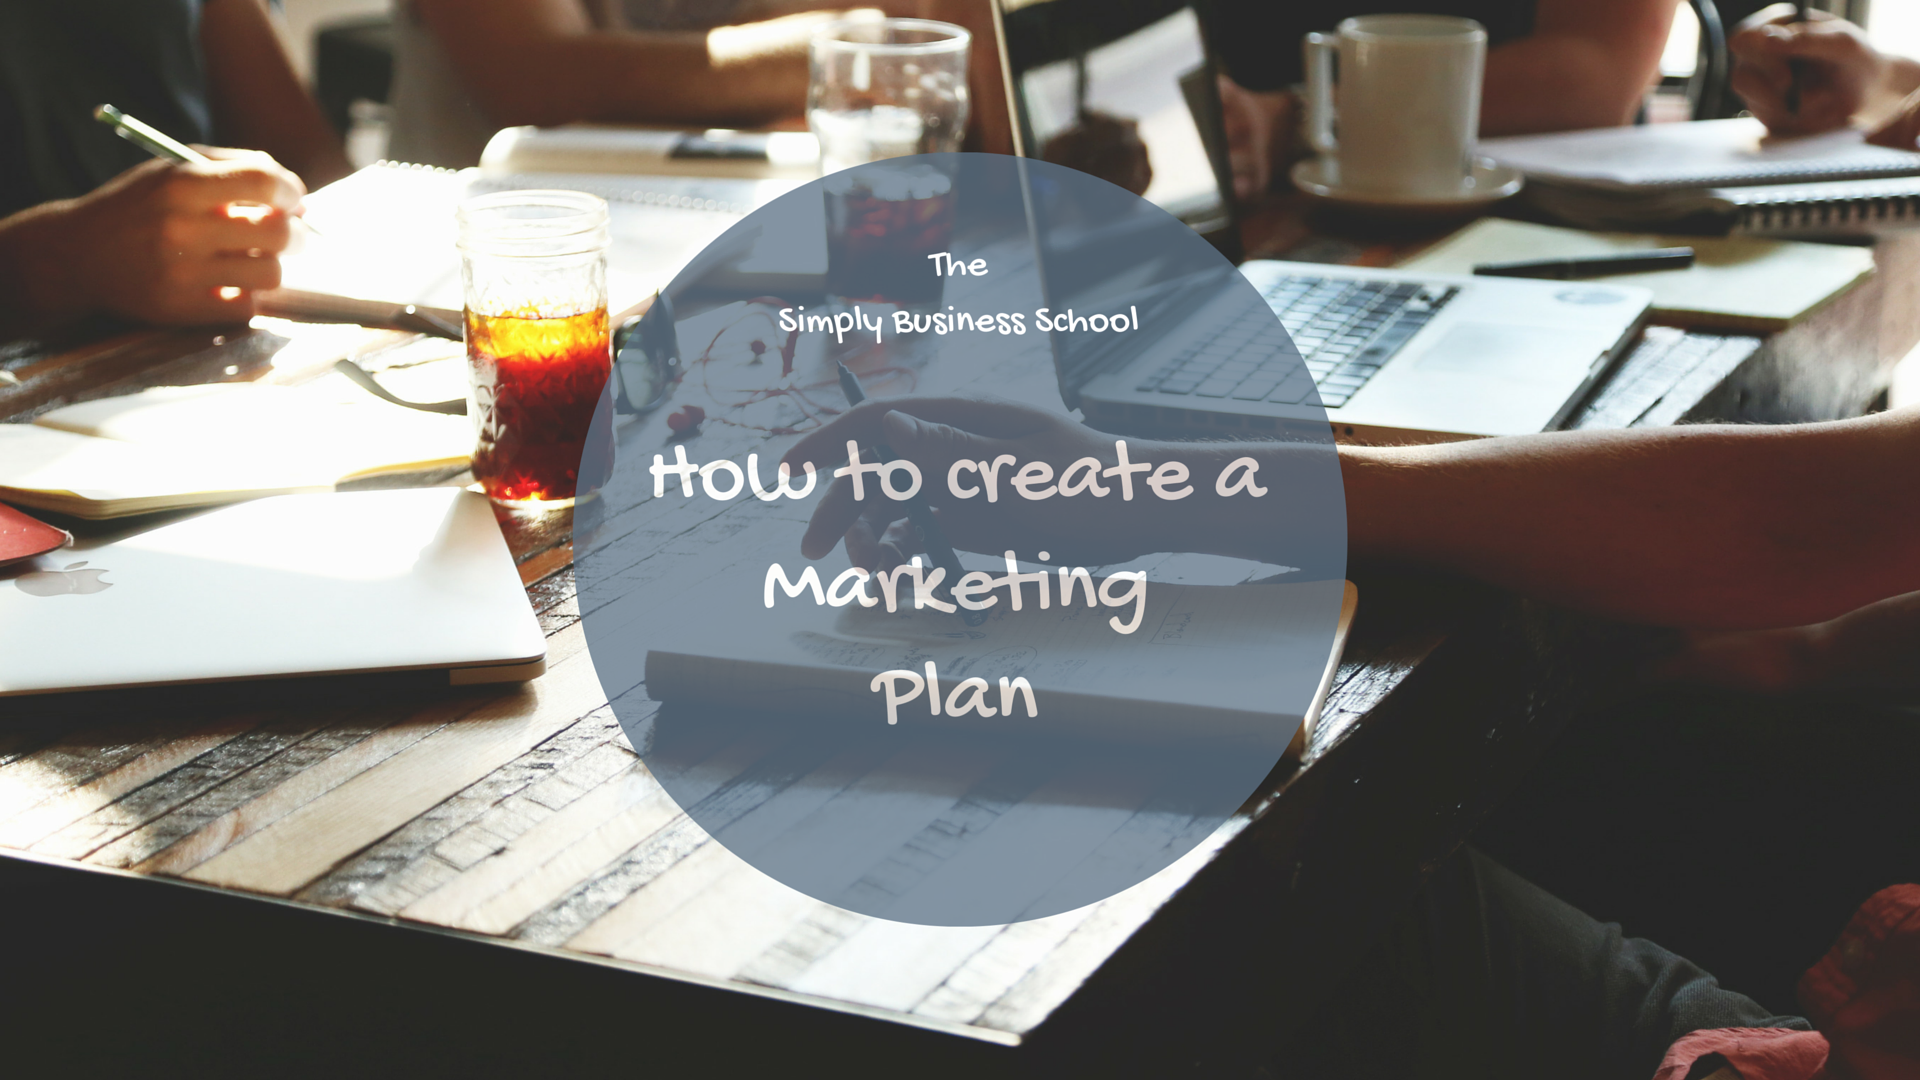 Sample business plan for a guest house